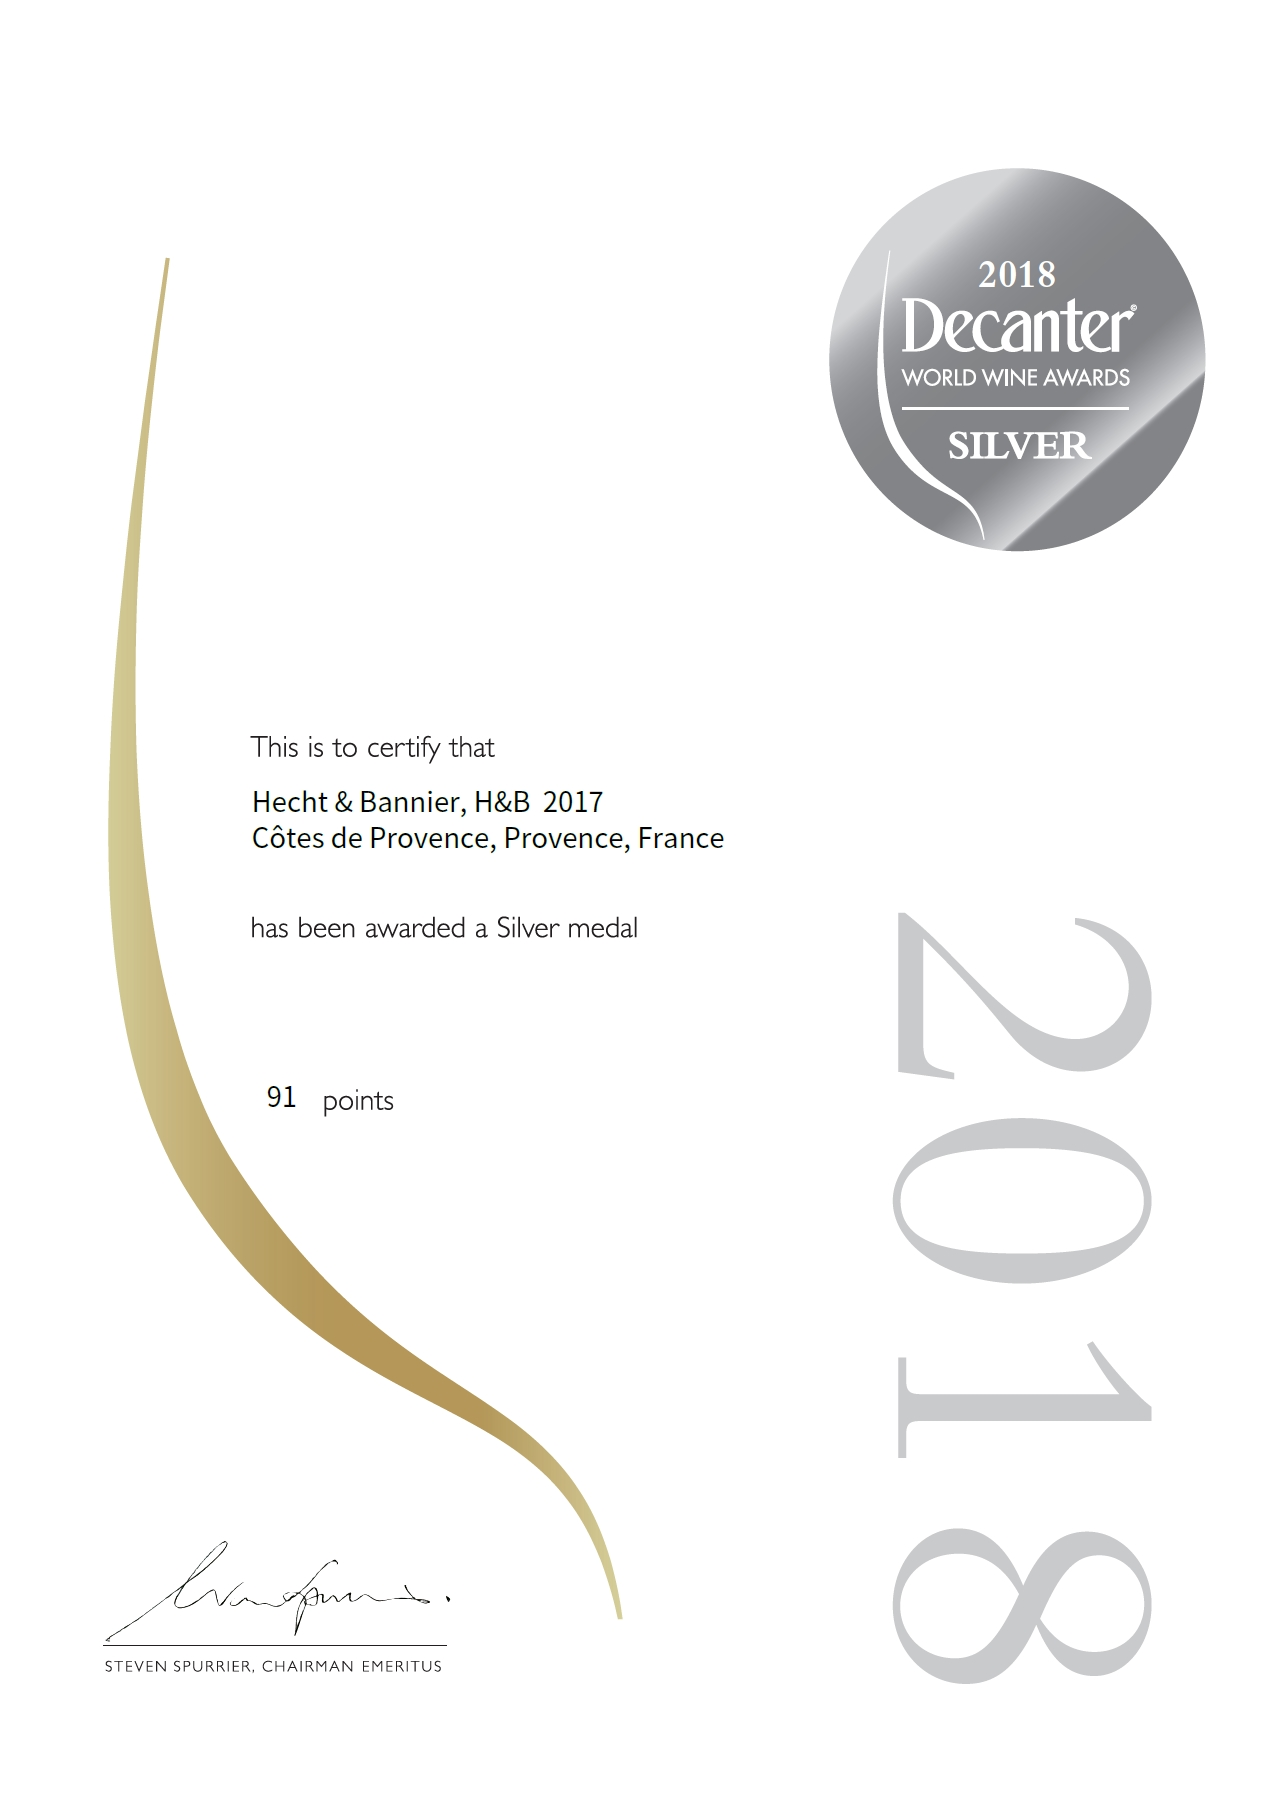 decanter world wine awards / côtes de provence rosé 2017